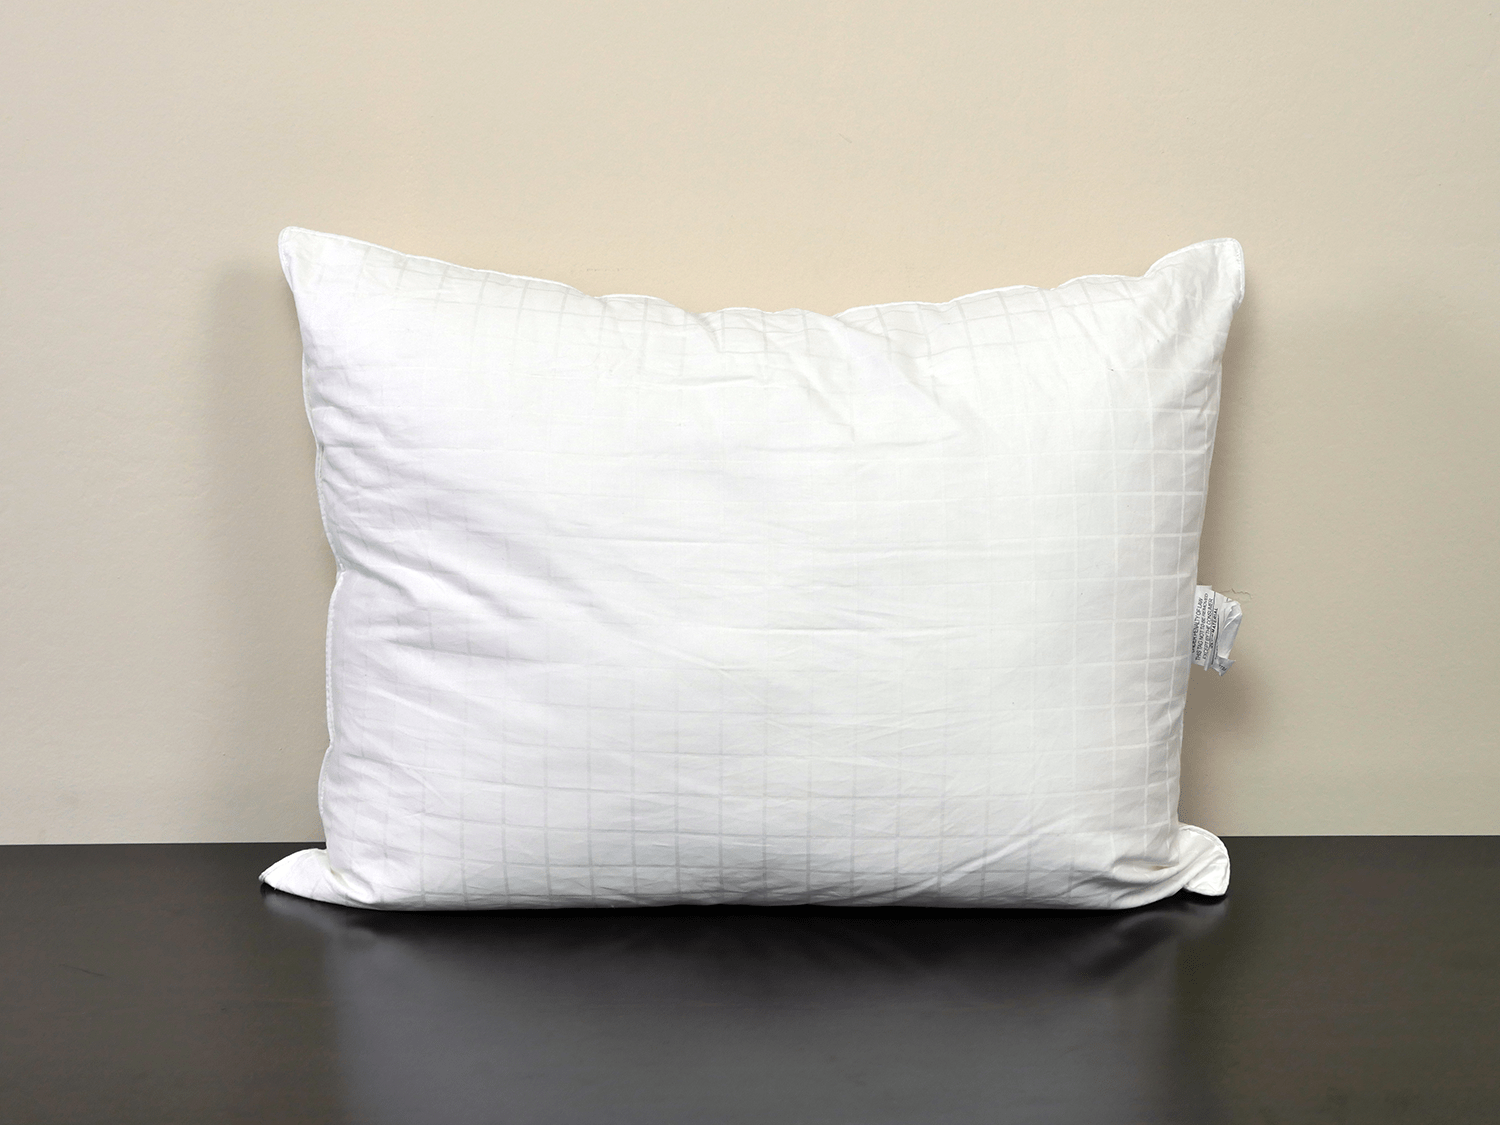 Orion model of the Slumbr pillow series